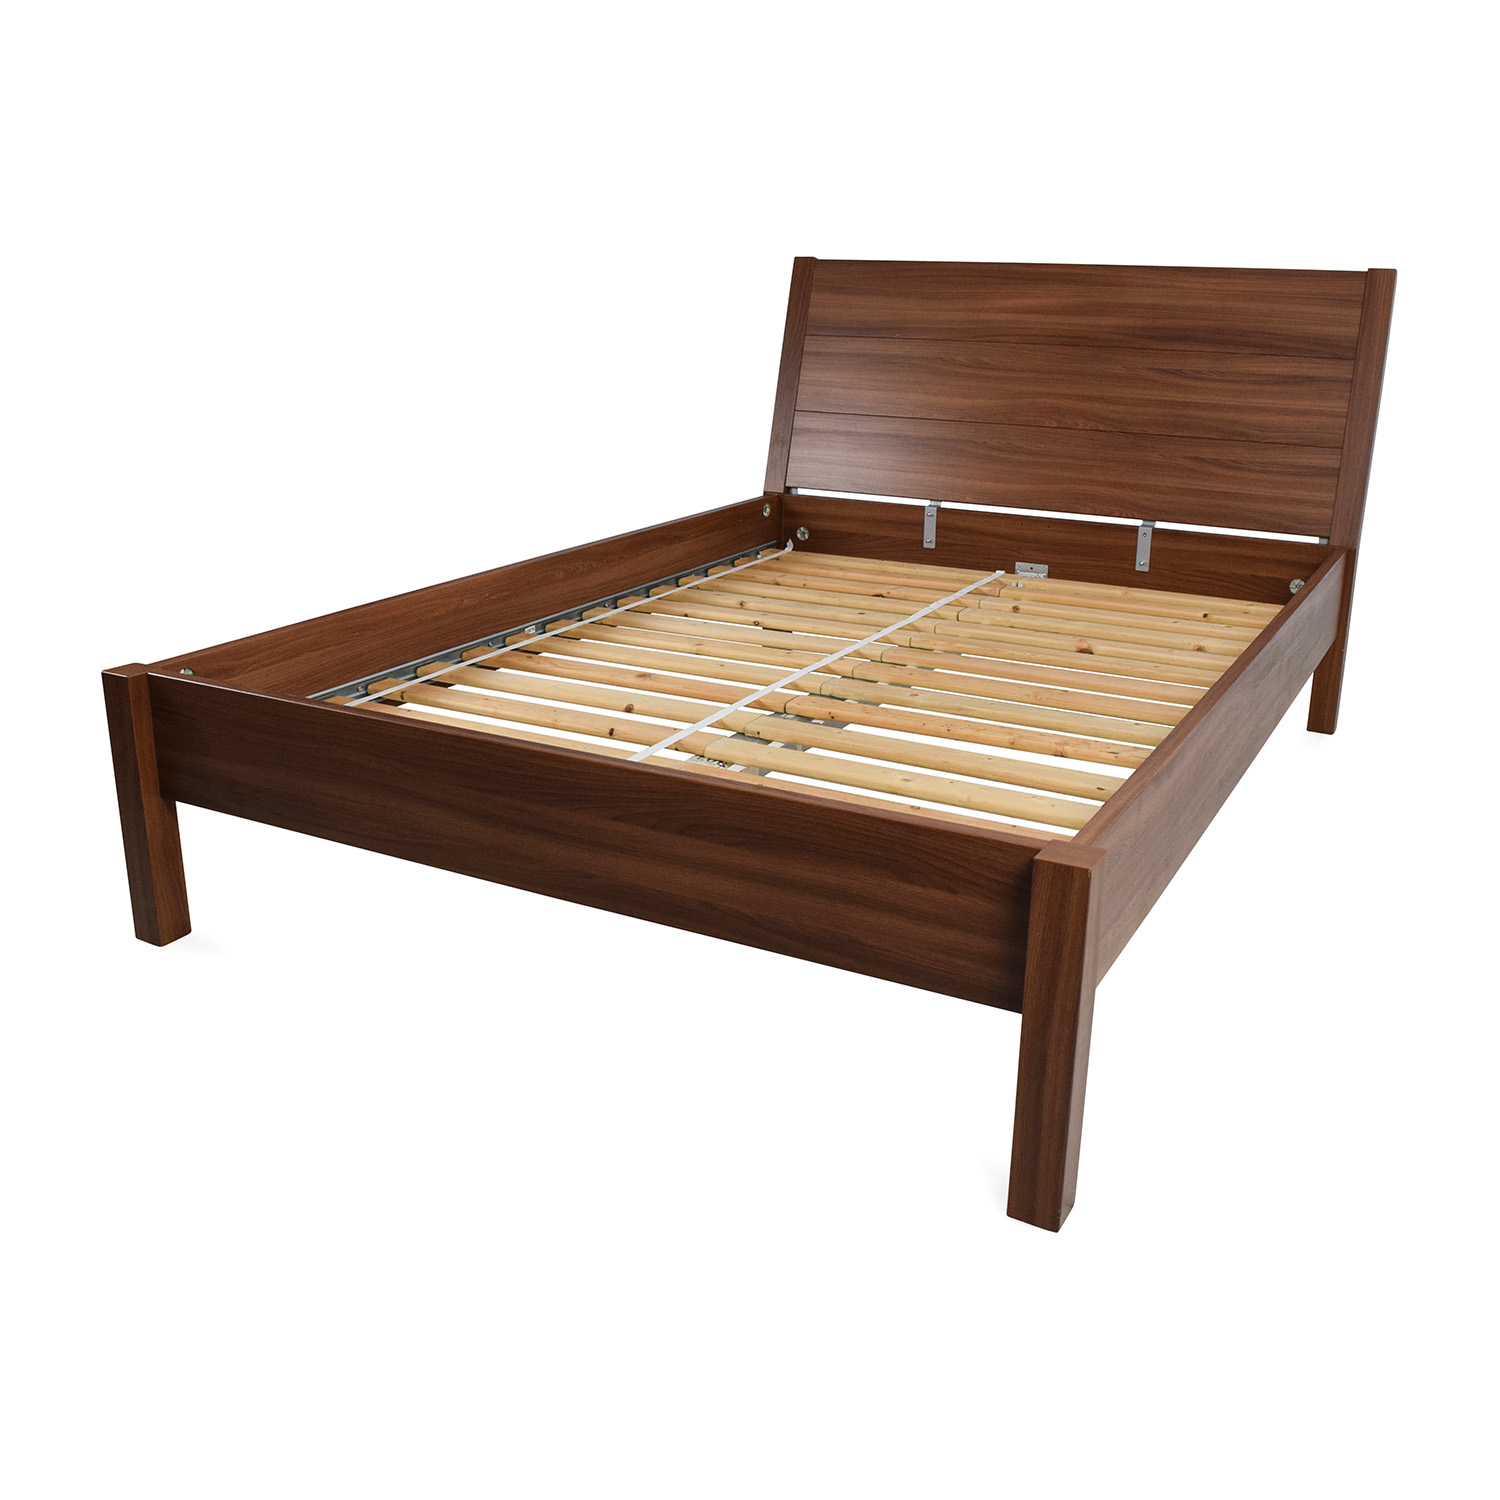 IKEA IKEA Full Size Brown Bed Frame for sale